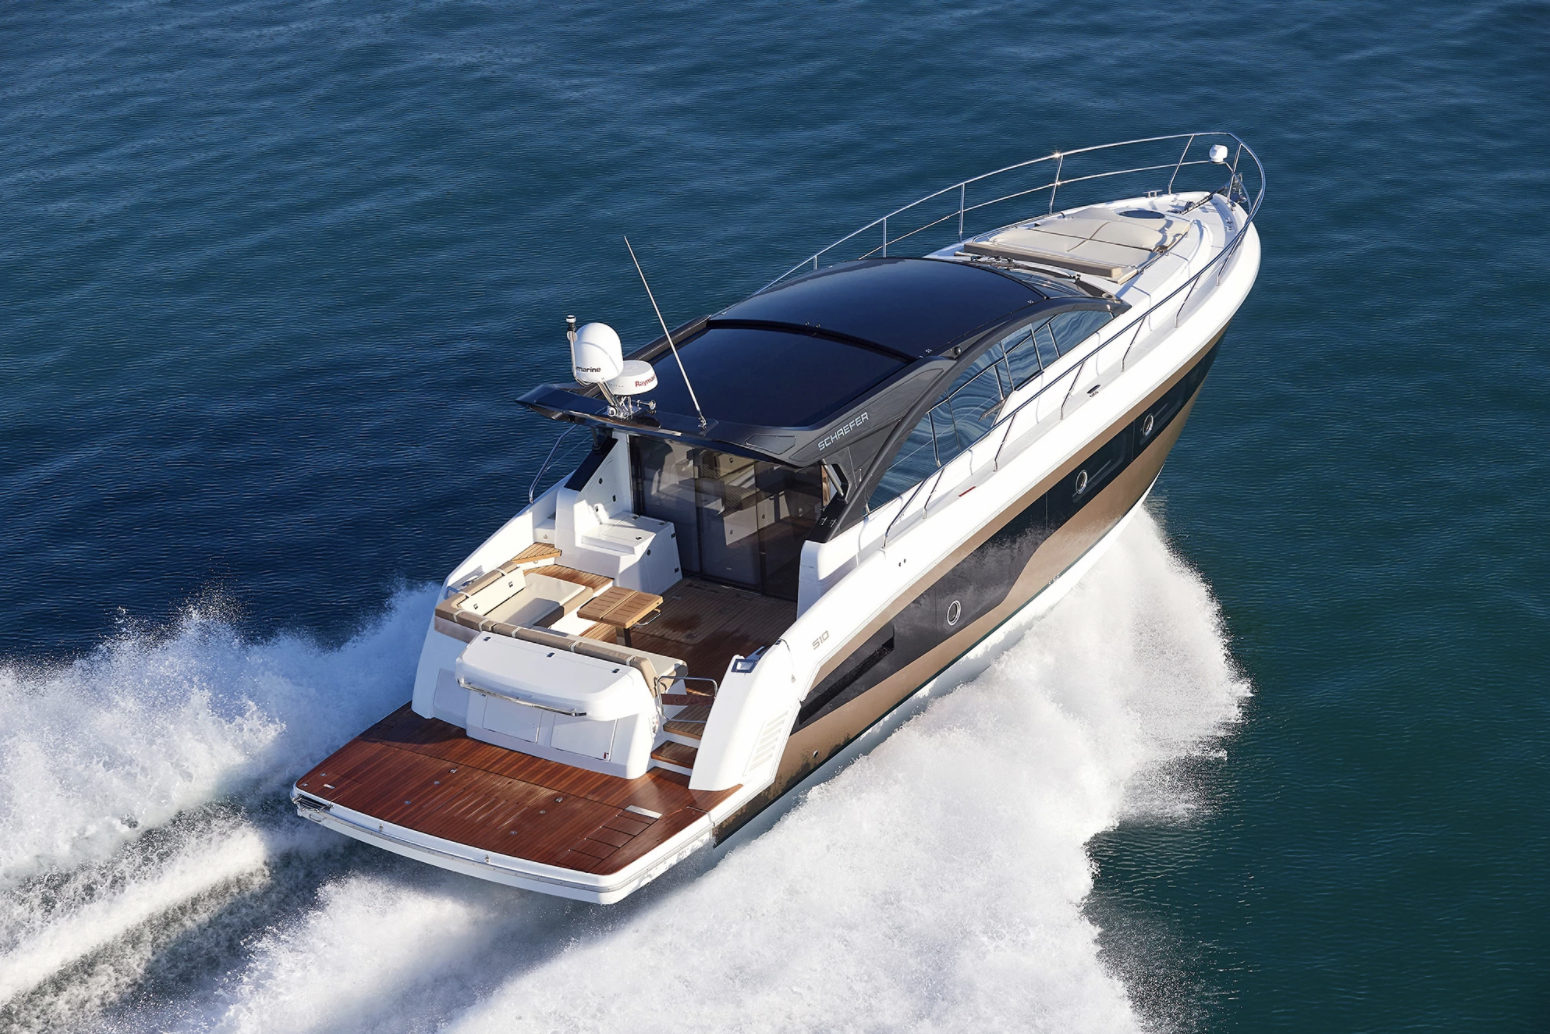 Schaefer 510 Sports Pininfarina pictured cruising from behind